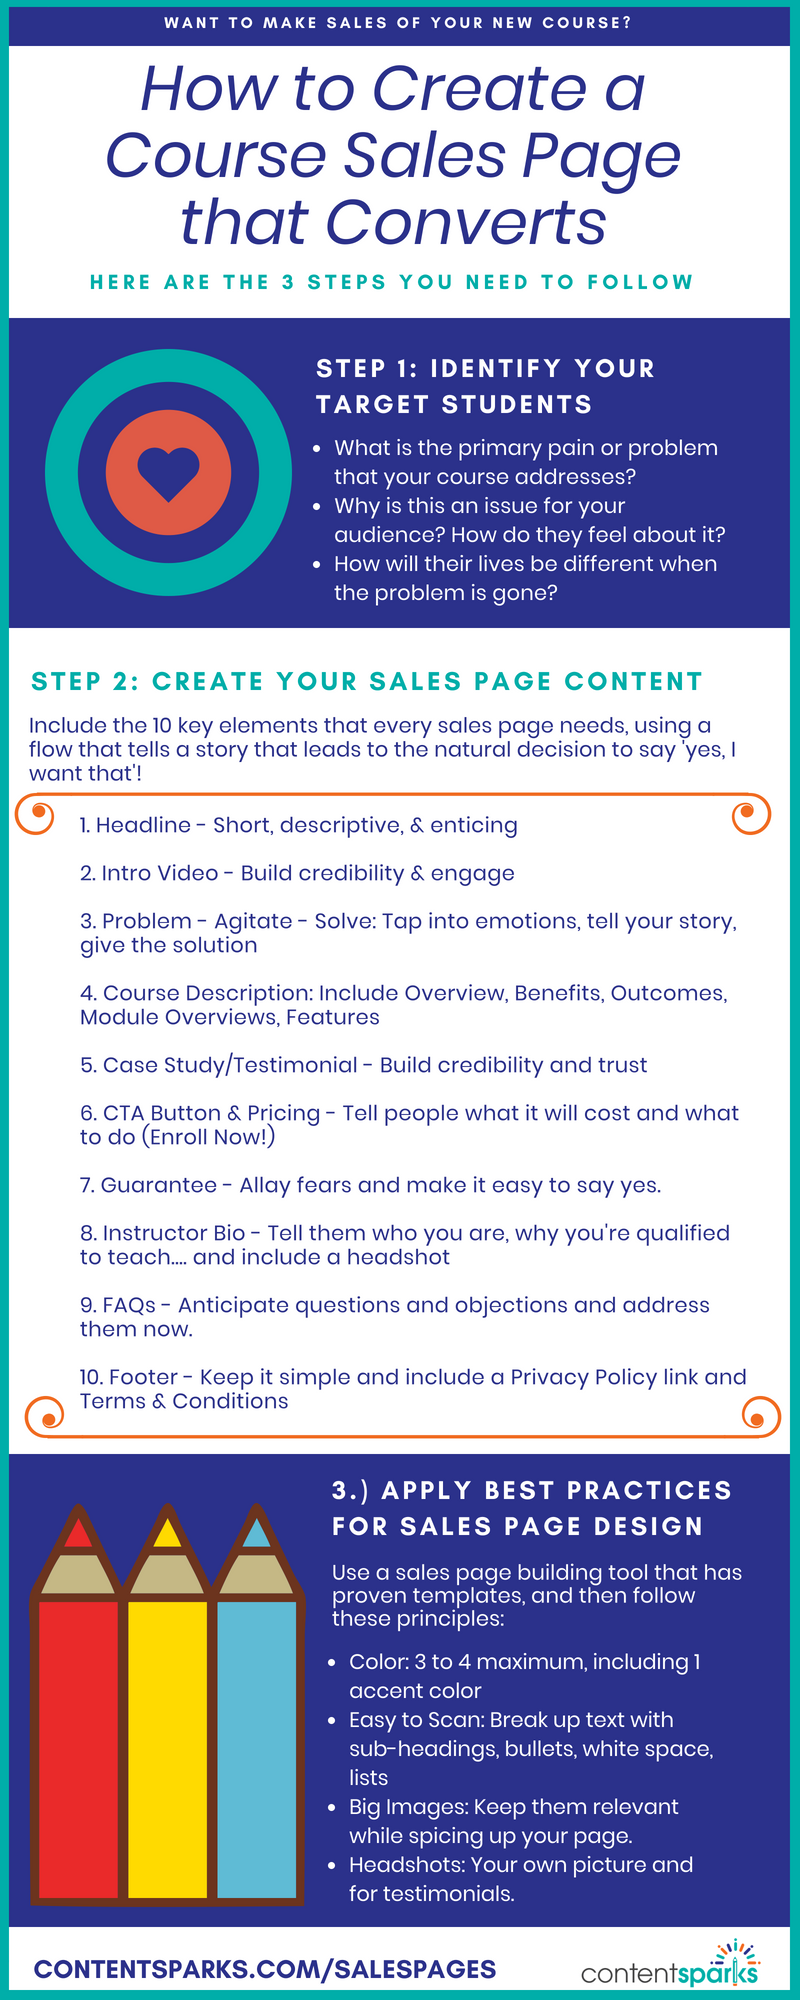 How to Create a High-Converting Sales Page for Your Course